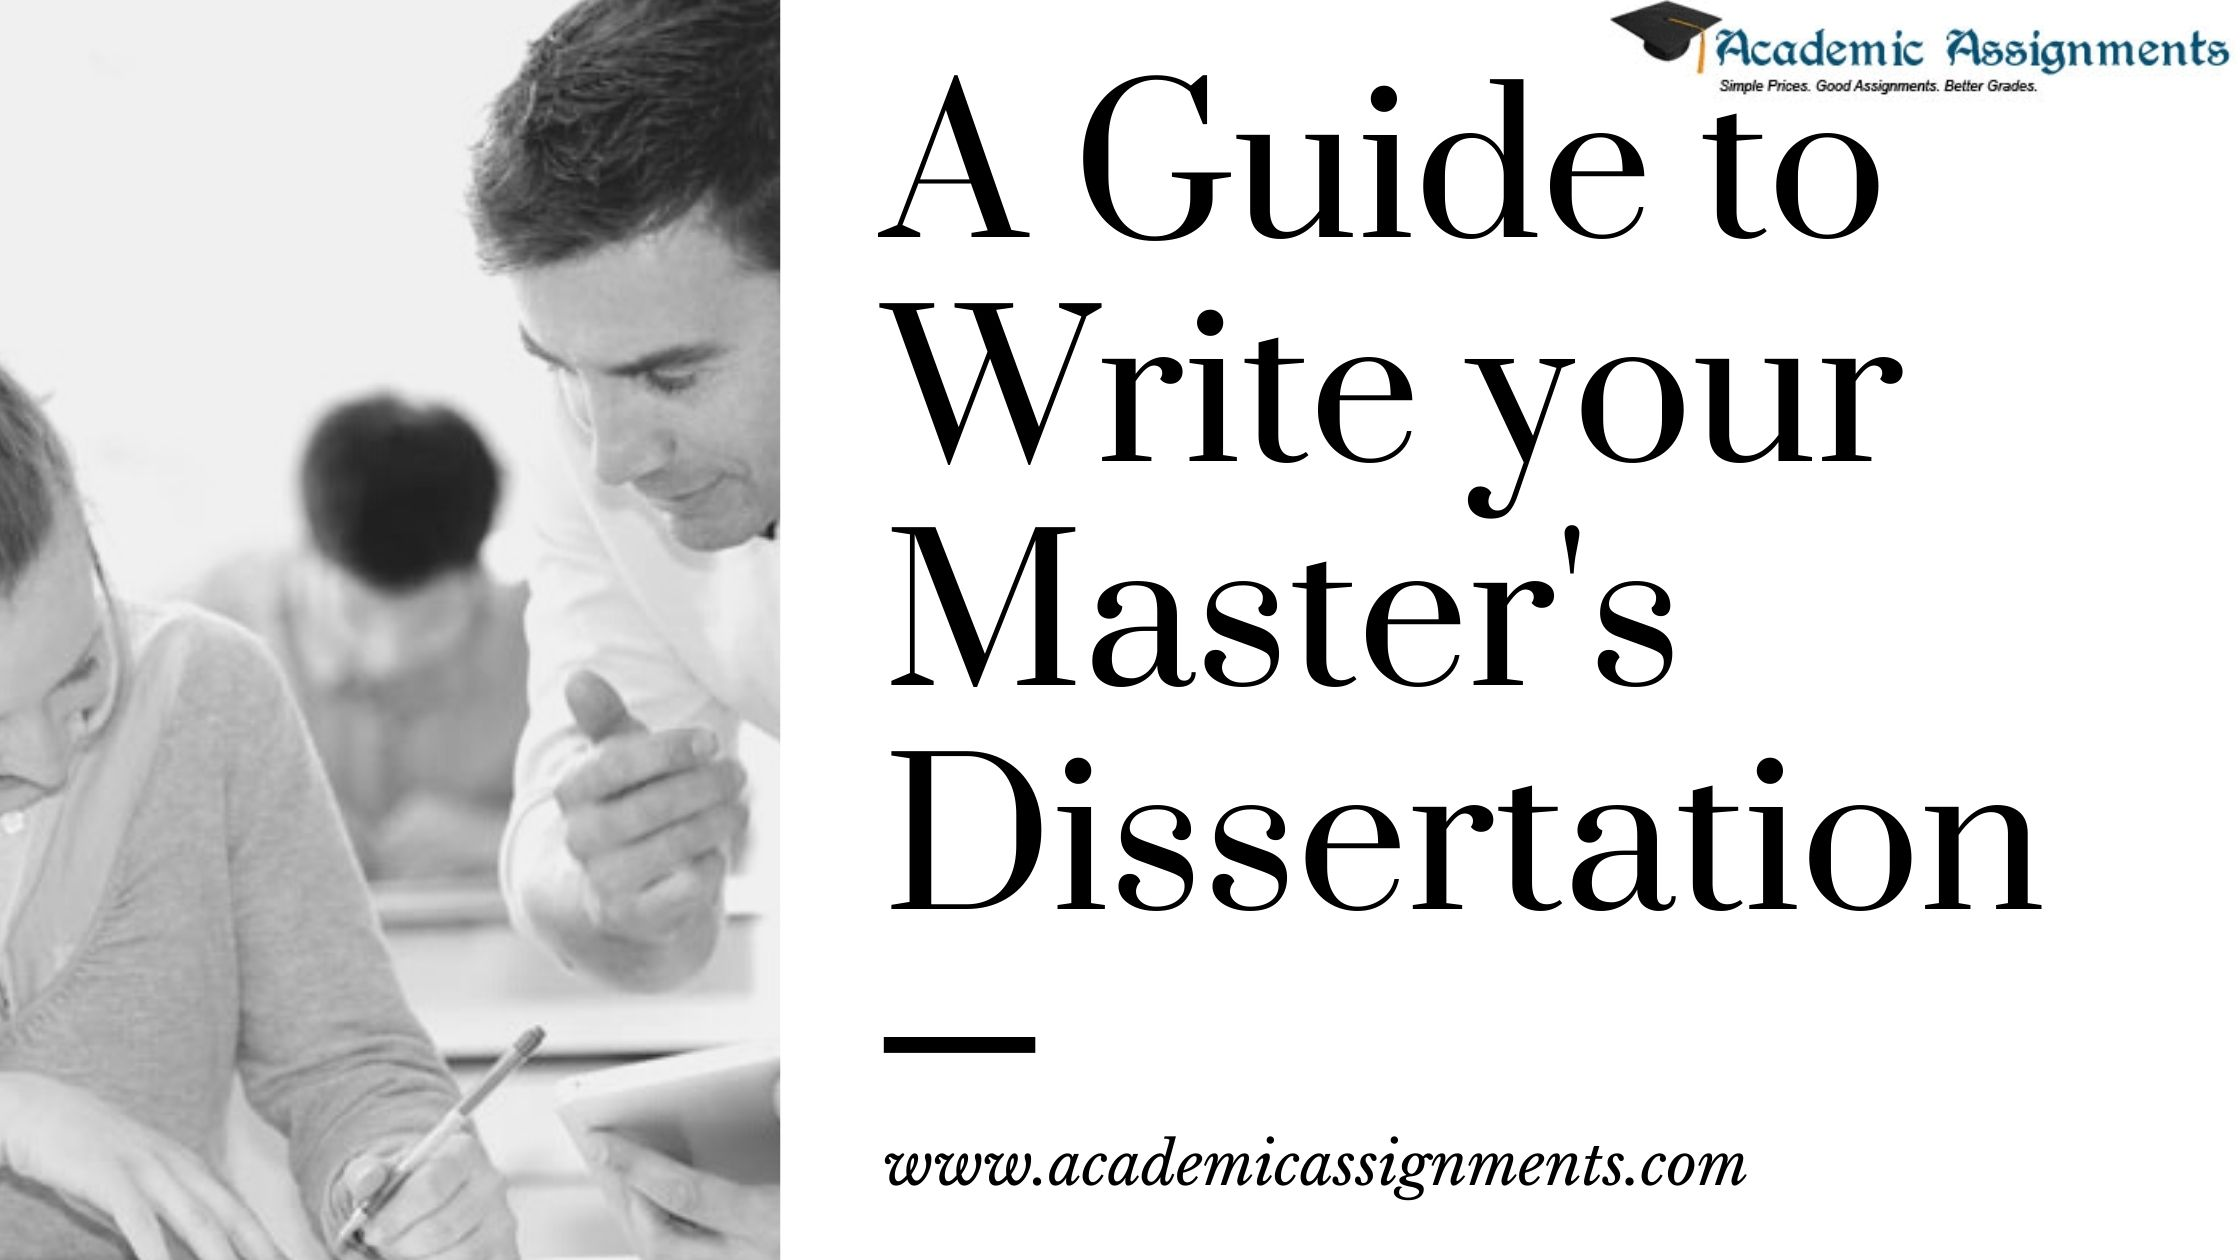 A Guide to Write your Master's Dissertation